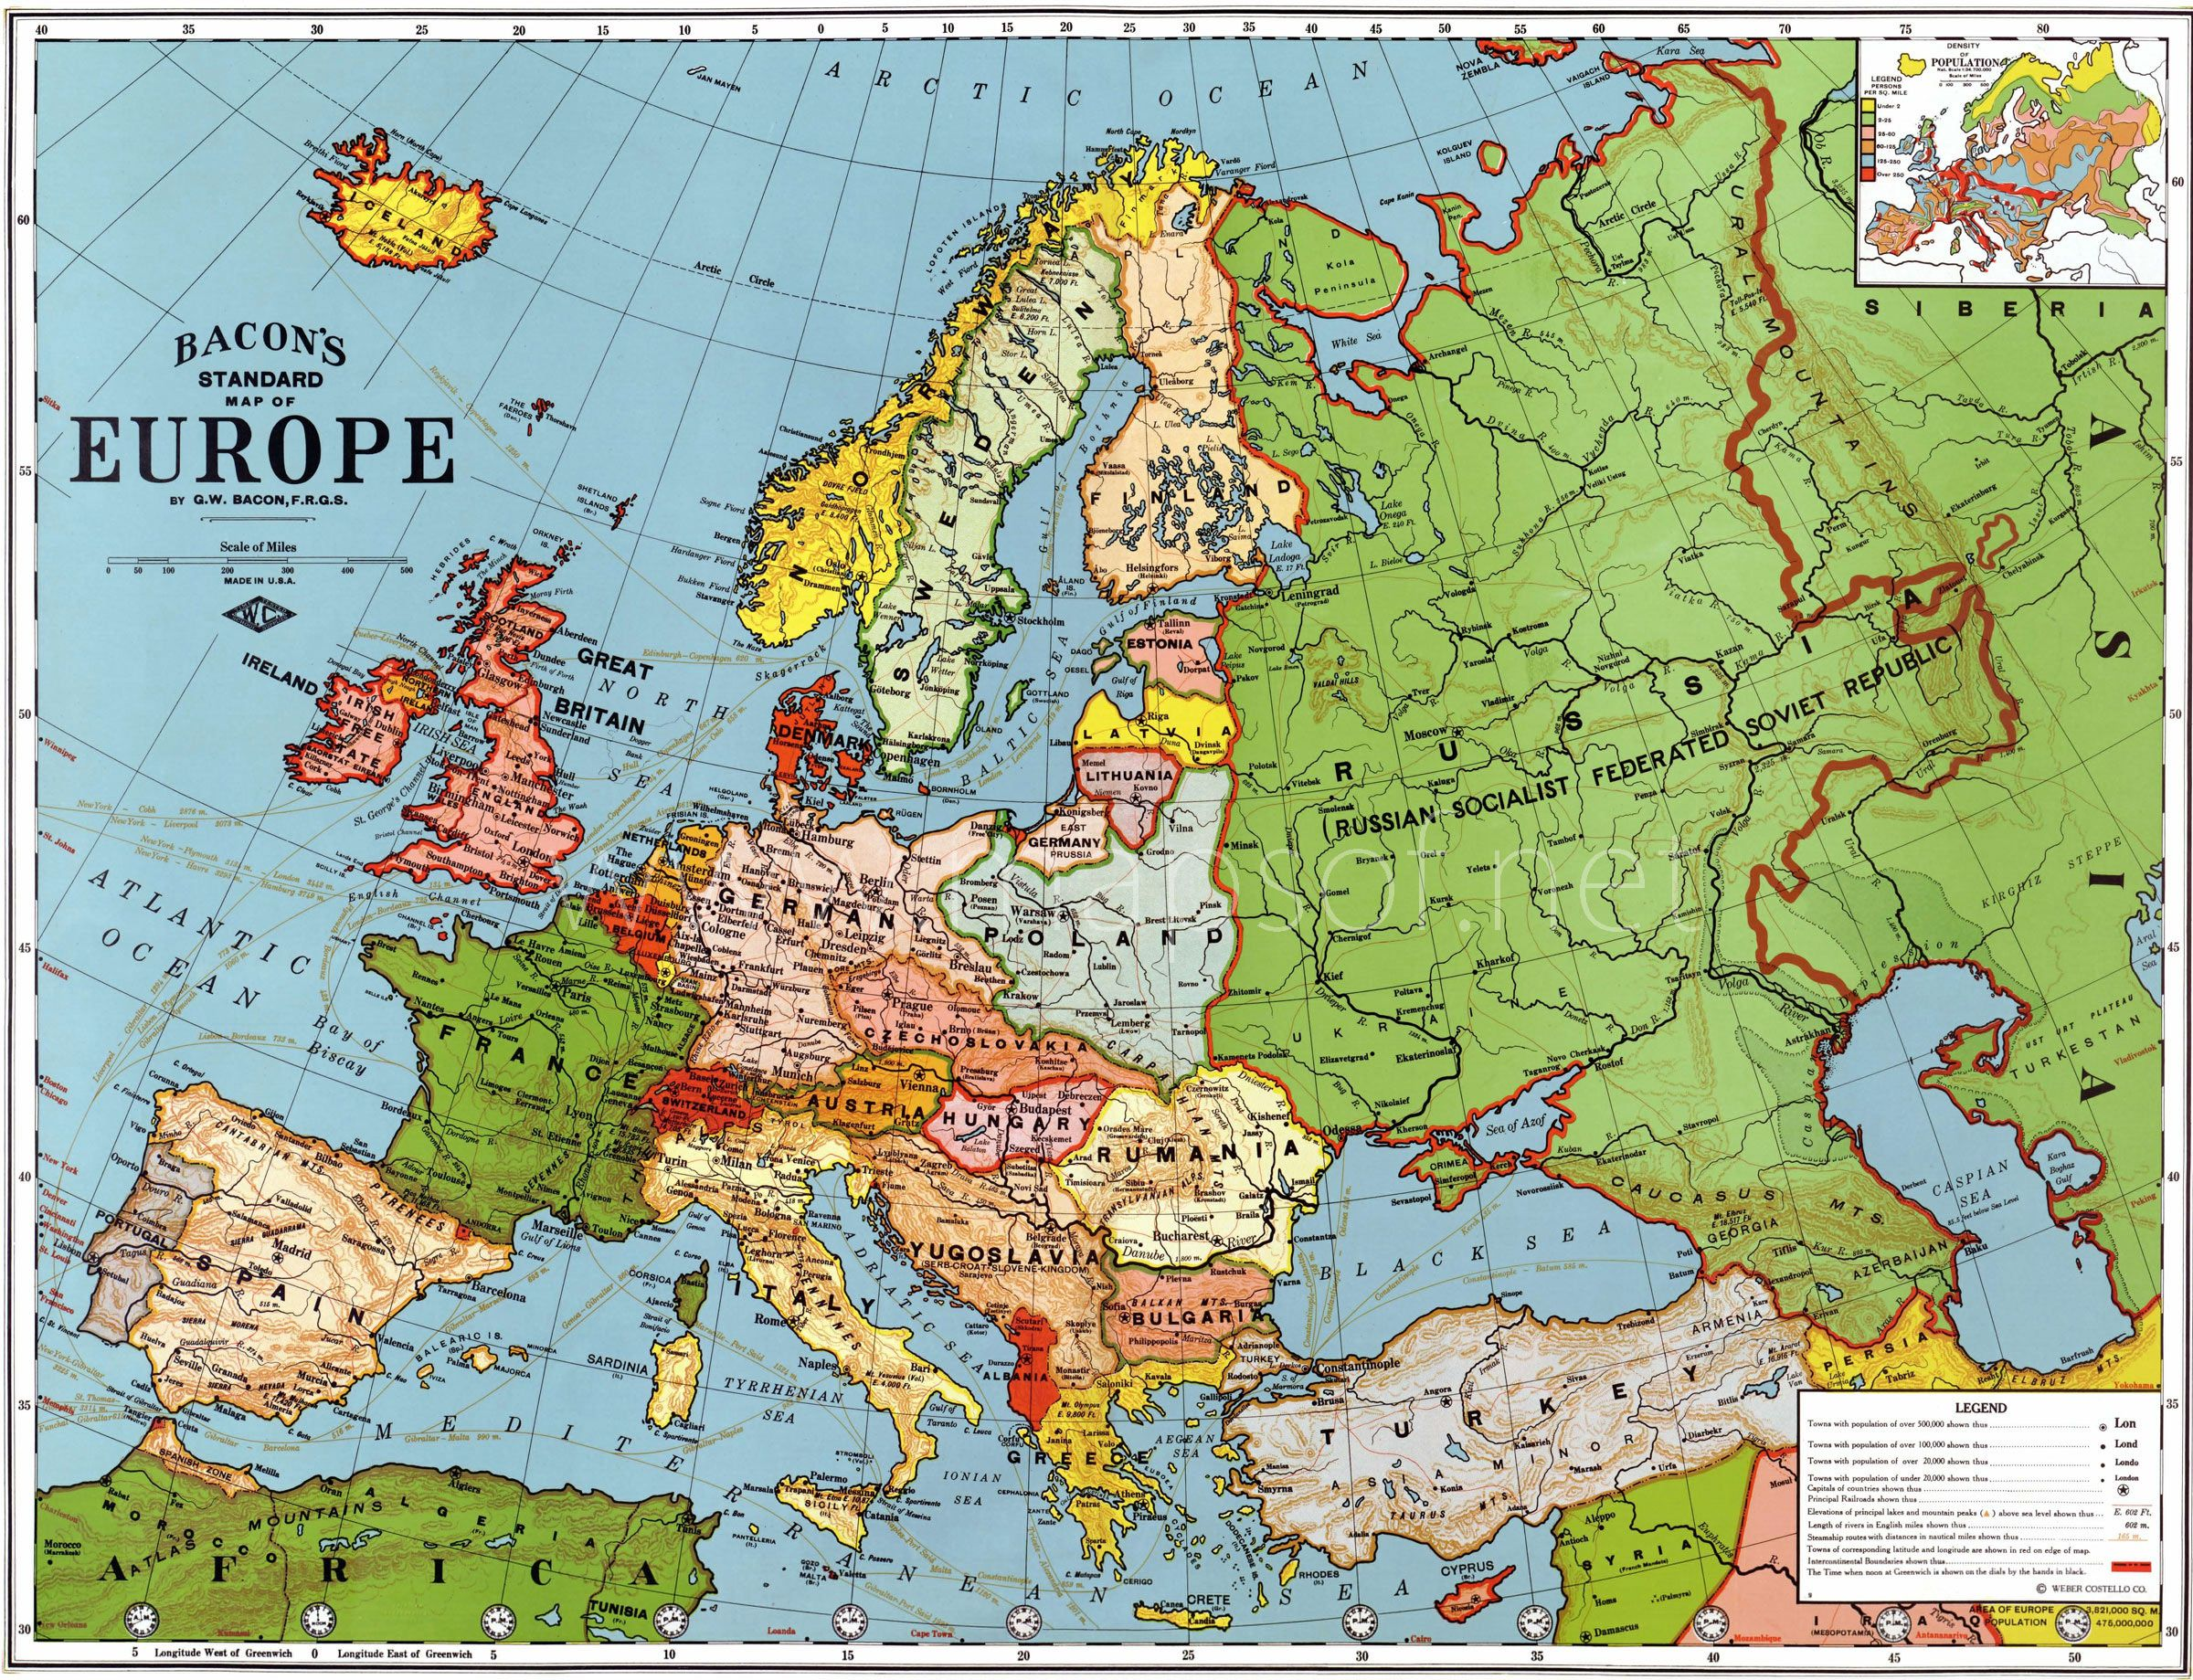 Europe Old Map 1923 For that pin board an actual real life